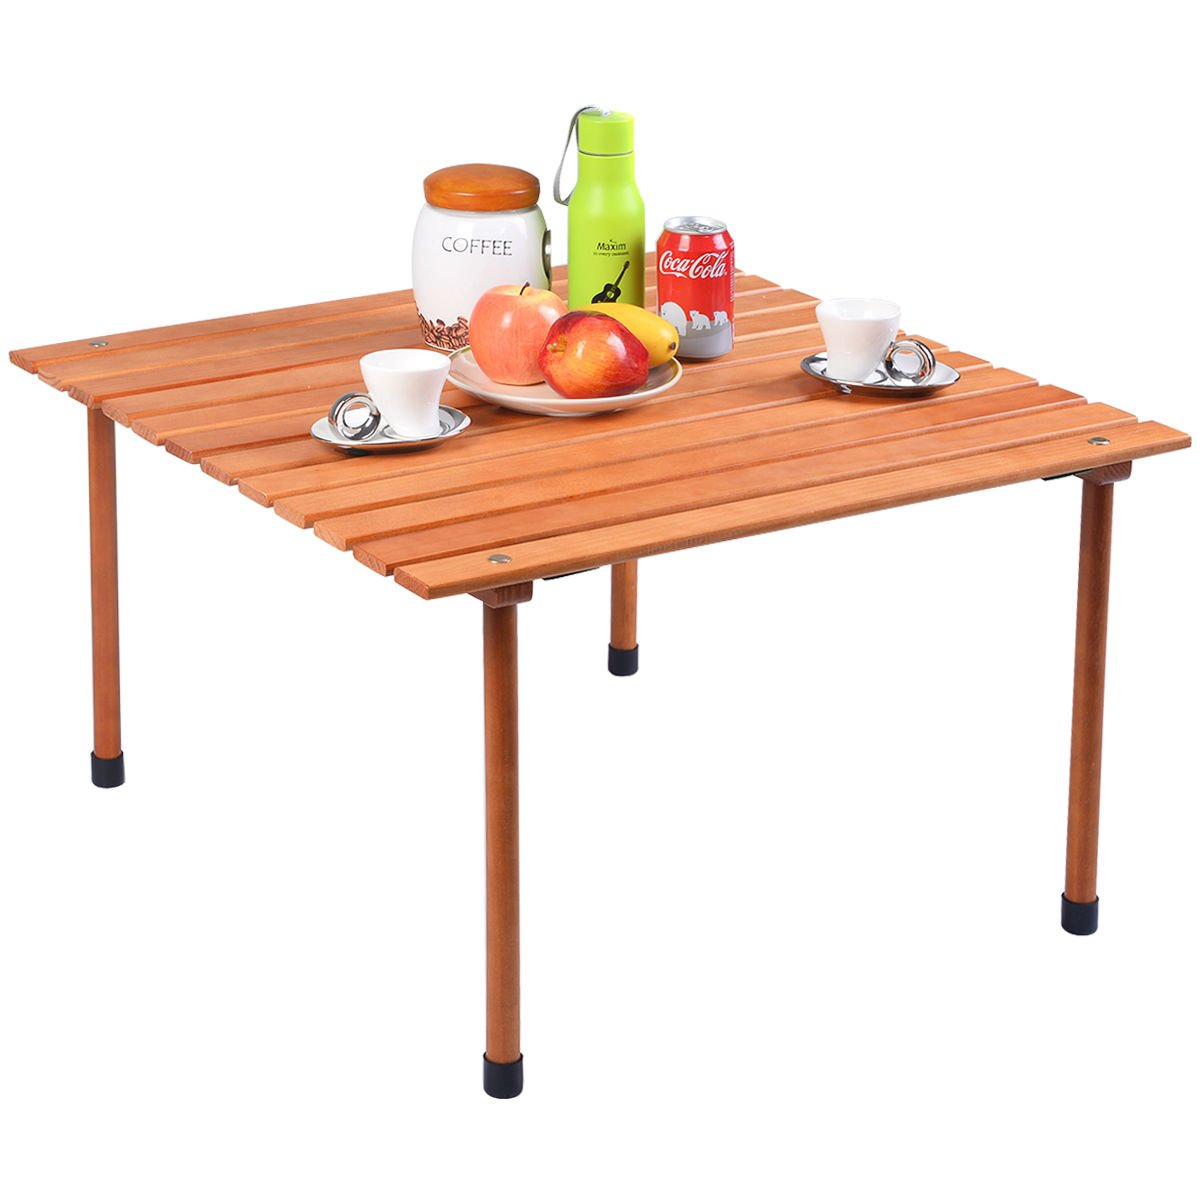 COSTWAY Wood Roll Up Portable Table for Outdoor Camping, Picnics, Beach w/Carrying Bag